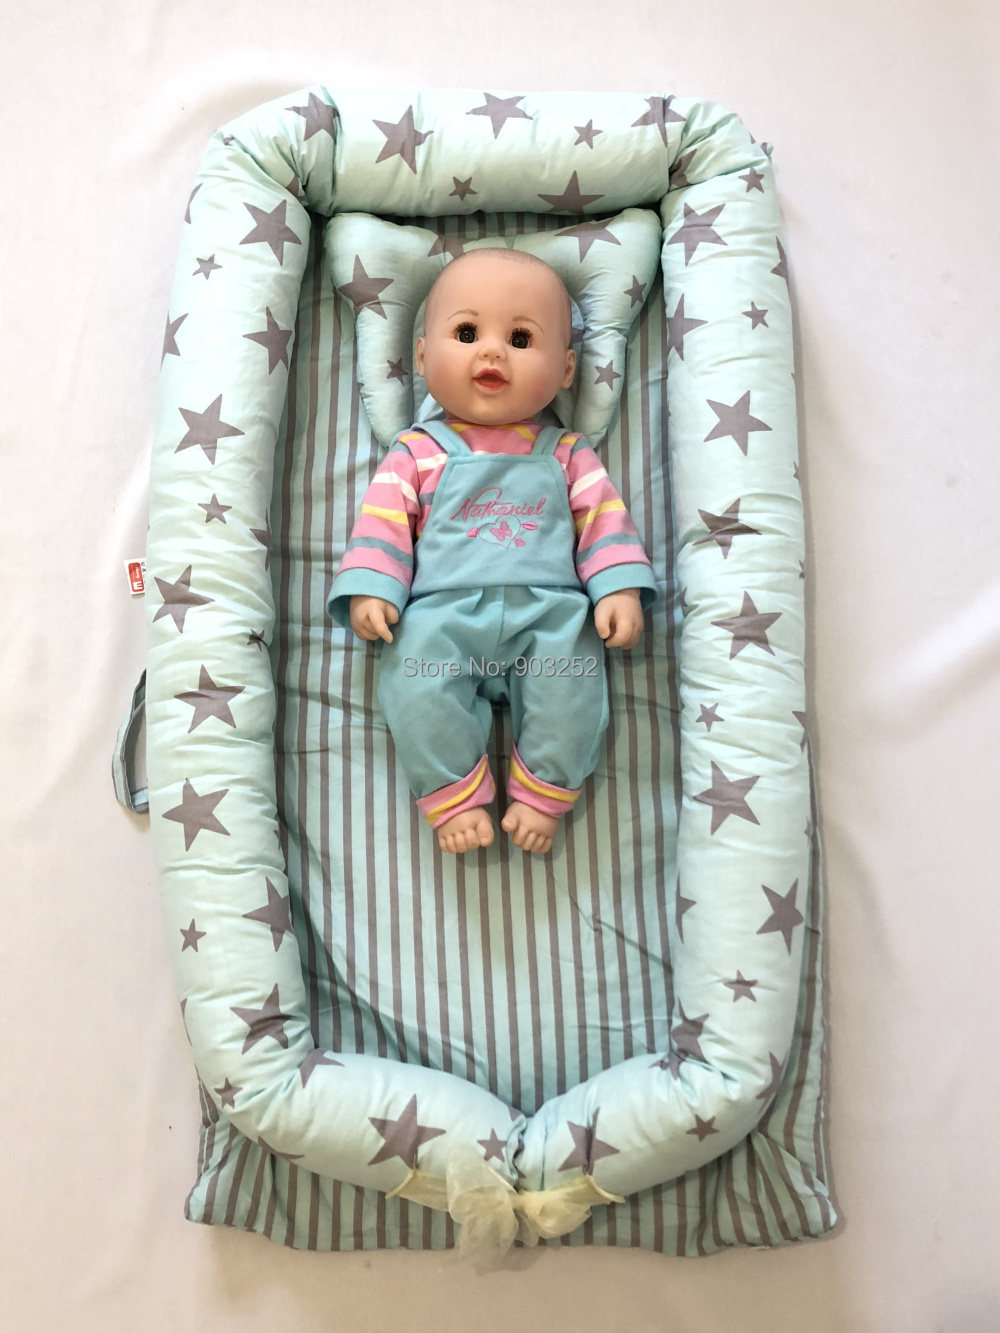 Baby Nest Bed With Pillow,baby Bed,snuggle Nest.Co-sleeper,baby Travel Bed,baby Cocoon,toddler Bed,baby Sleeping